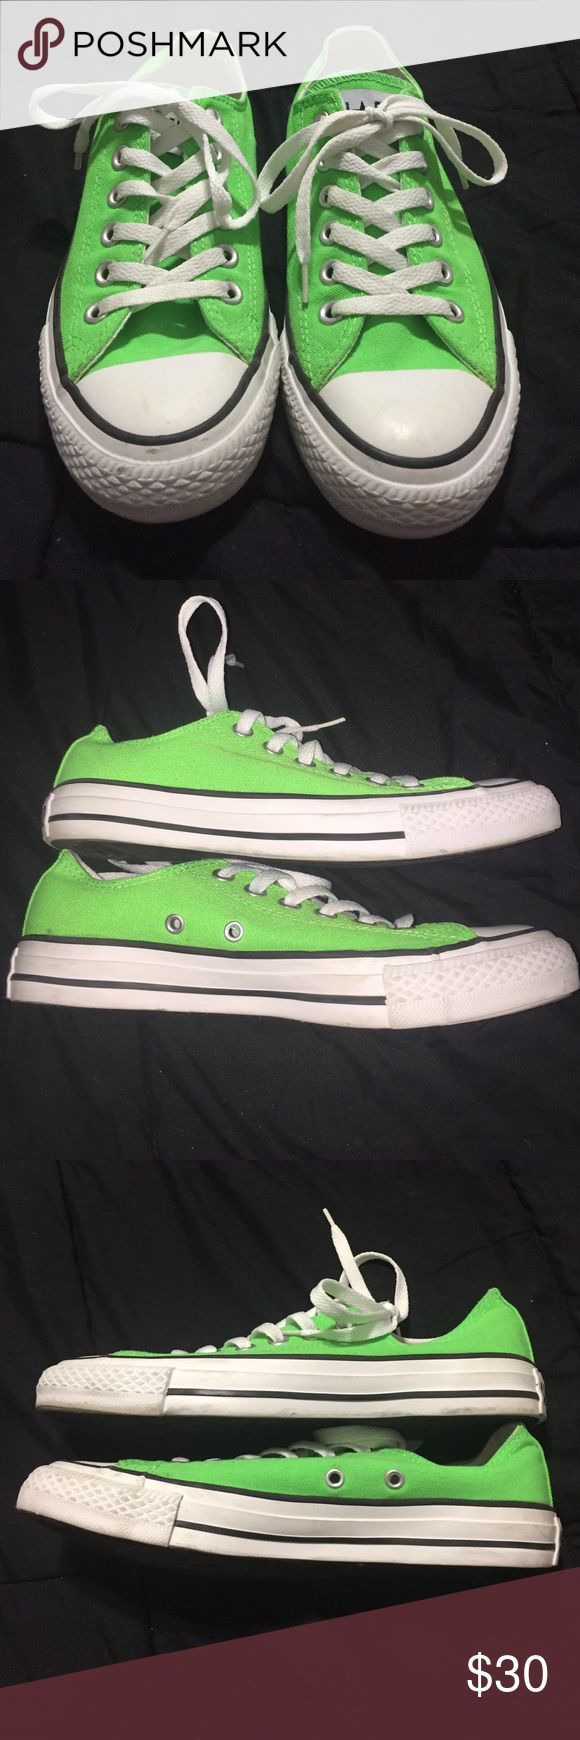 Neon green Converse neon green converse. Worn a few times so there are a few dirty spots from use. Still in great condition! Women's 8 or men's 6 Converse Shoes